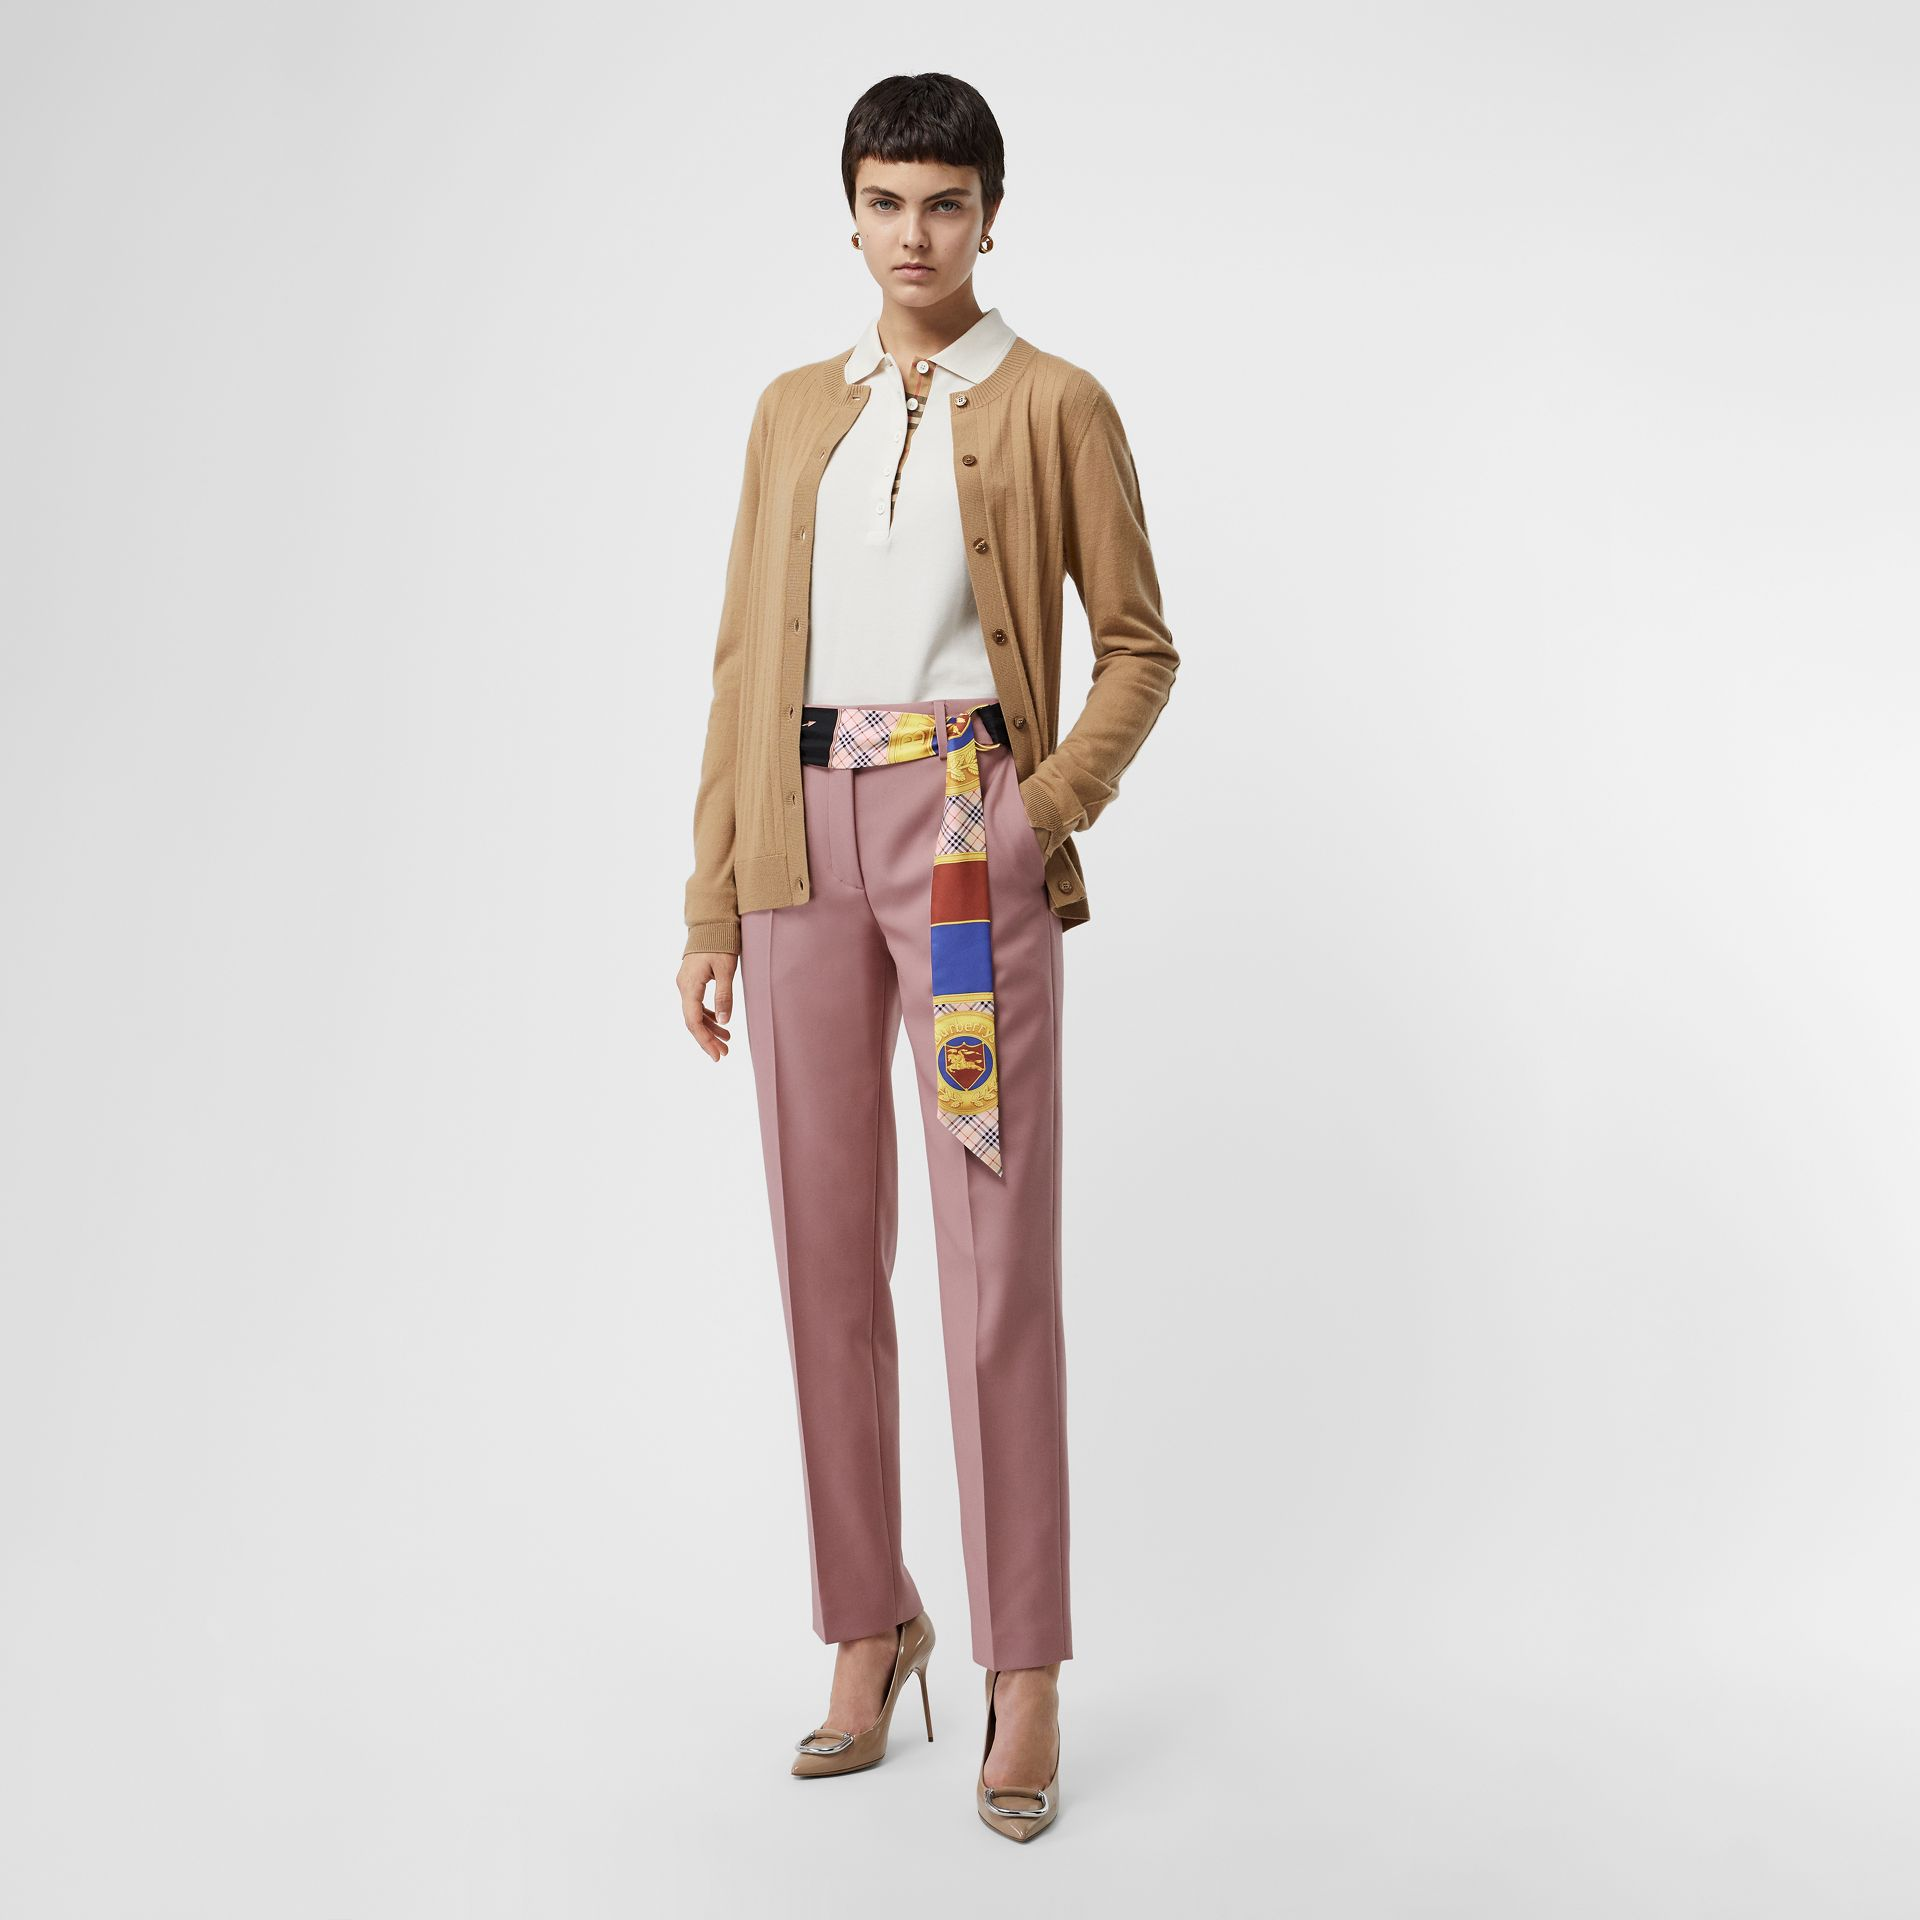 D-ring Detail Archive Print Silk Skinny Scarf in Multicolour | Burberry - gallery image 5